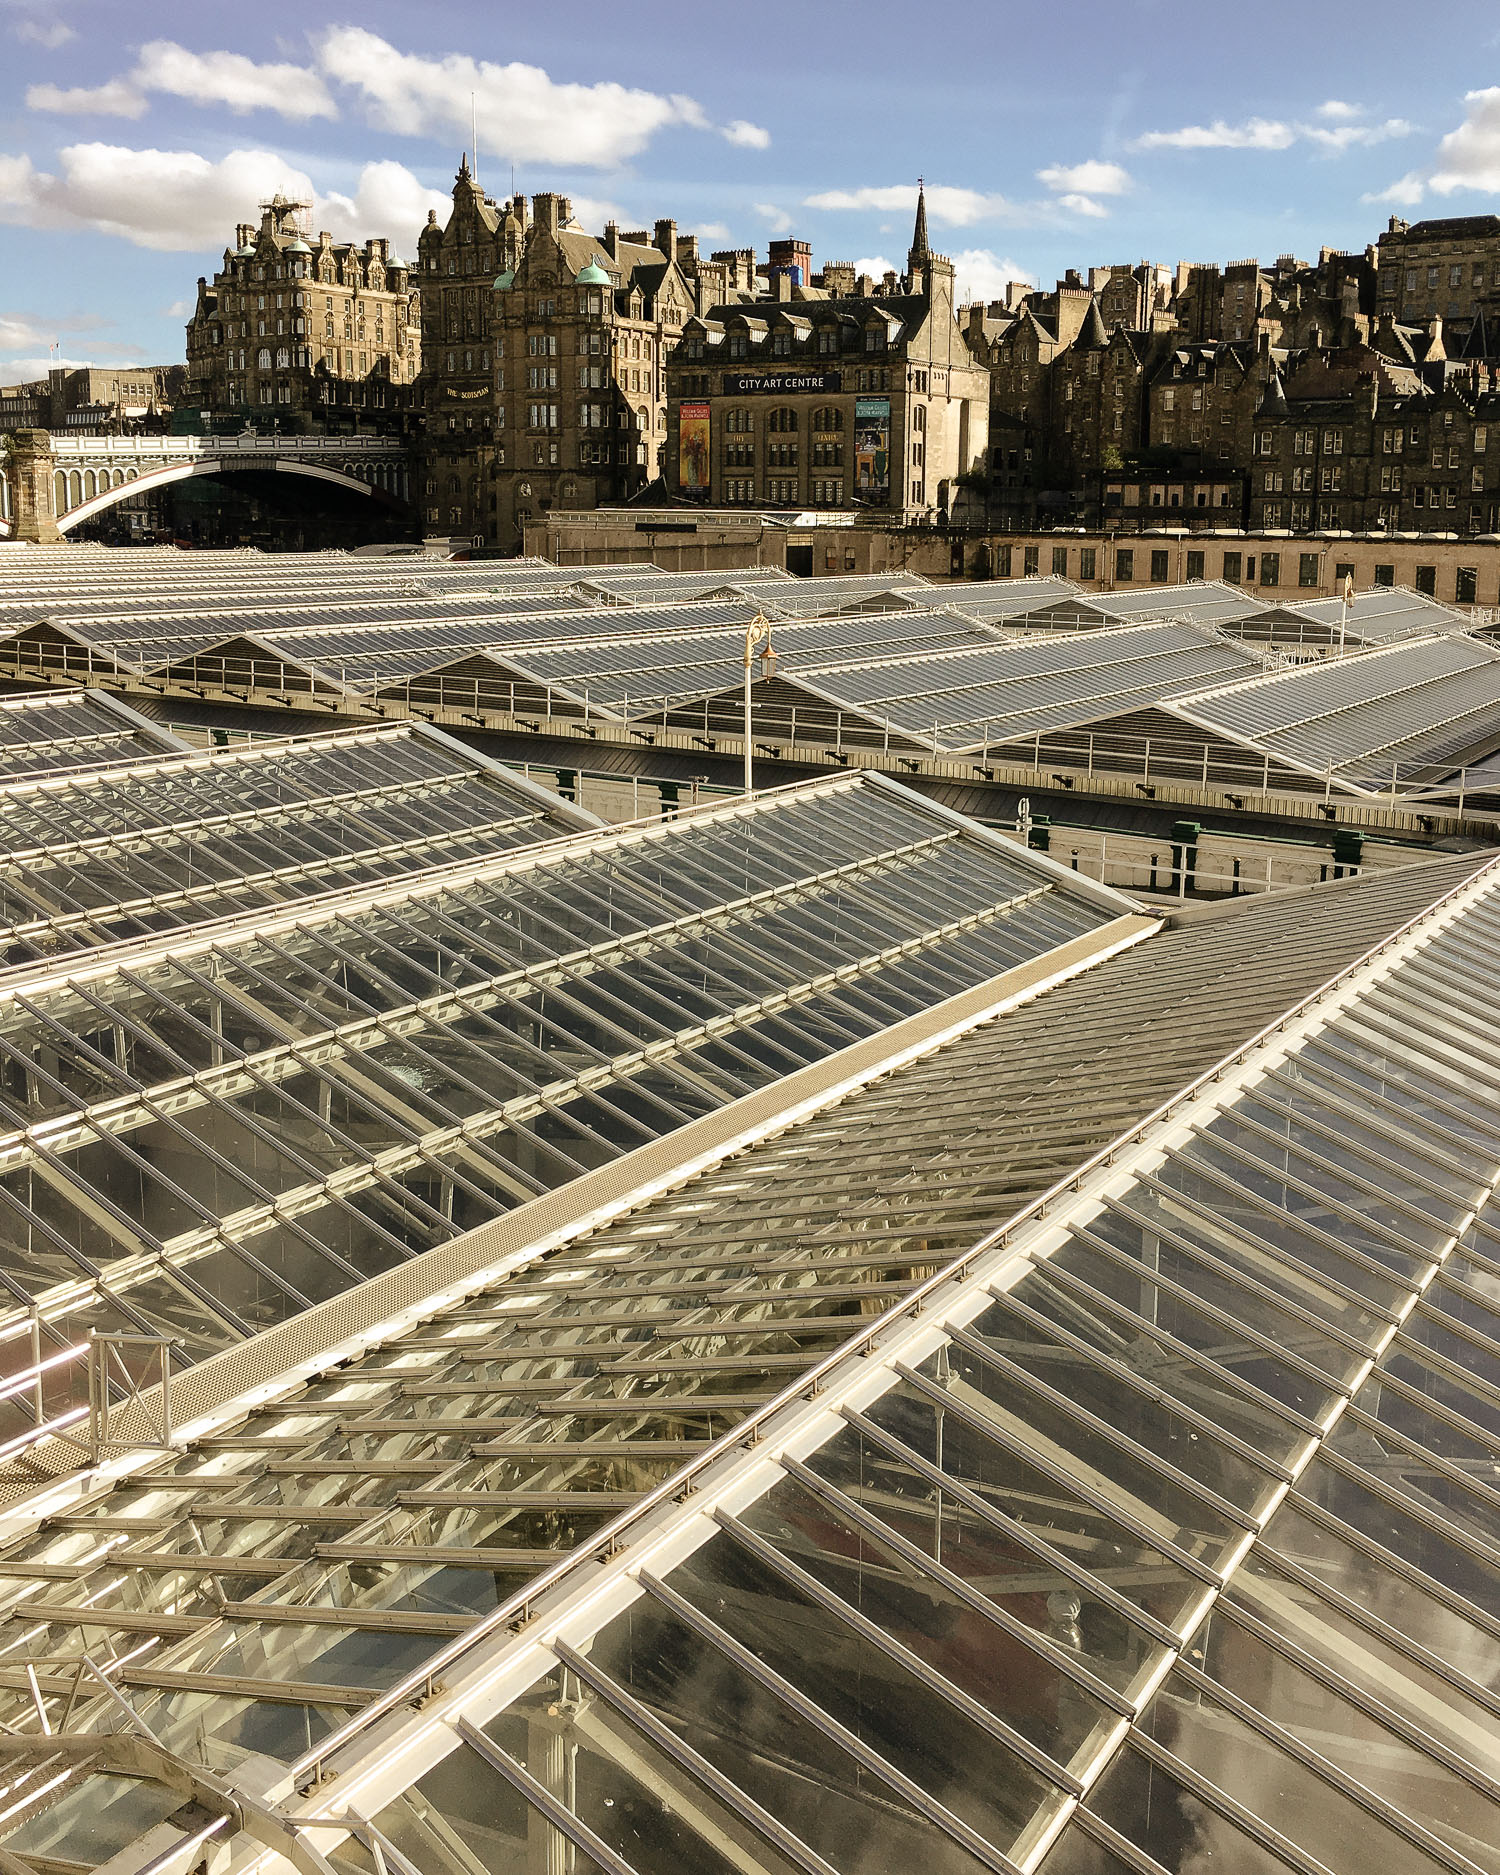 Edinburgh skyline across the rooftops